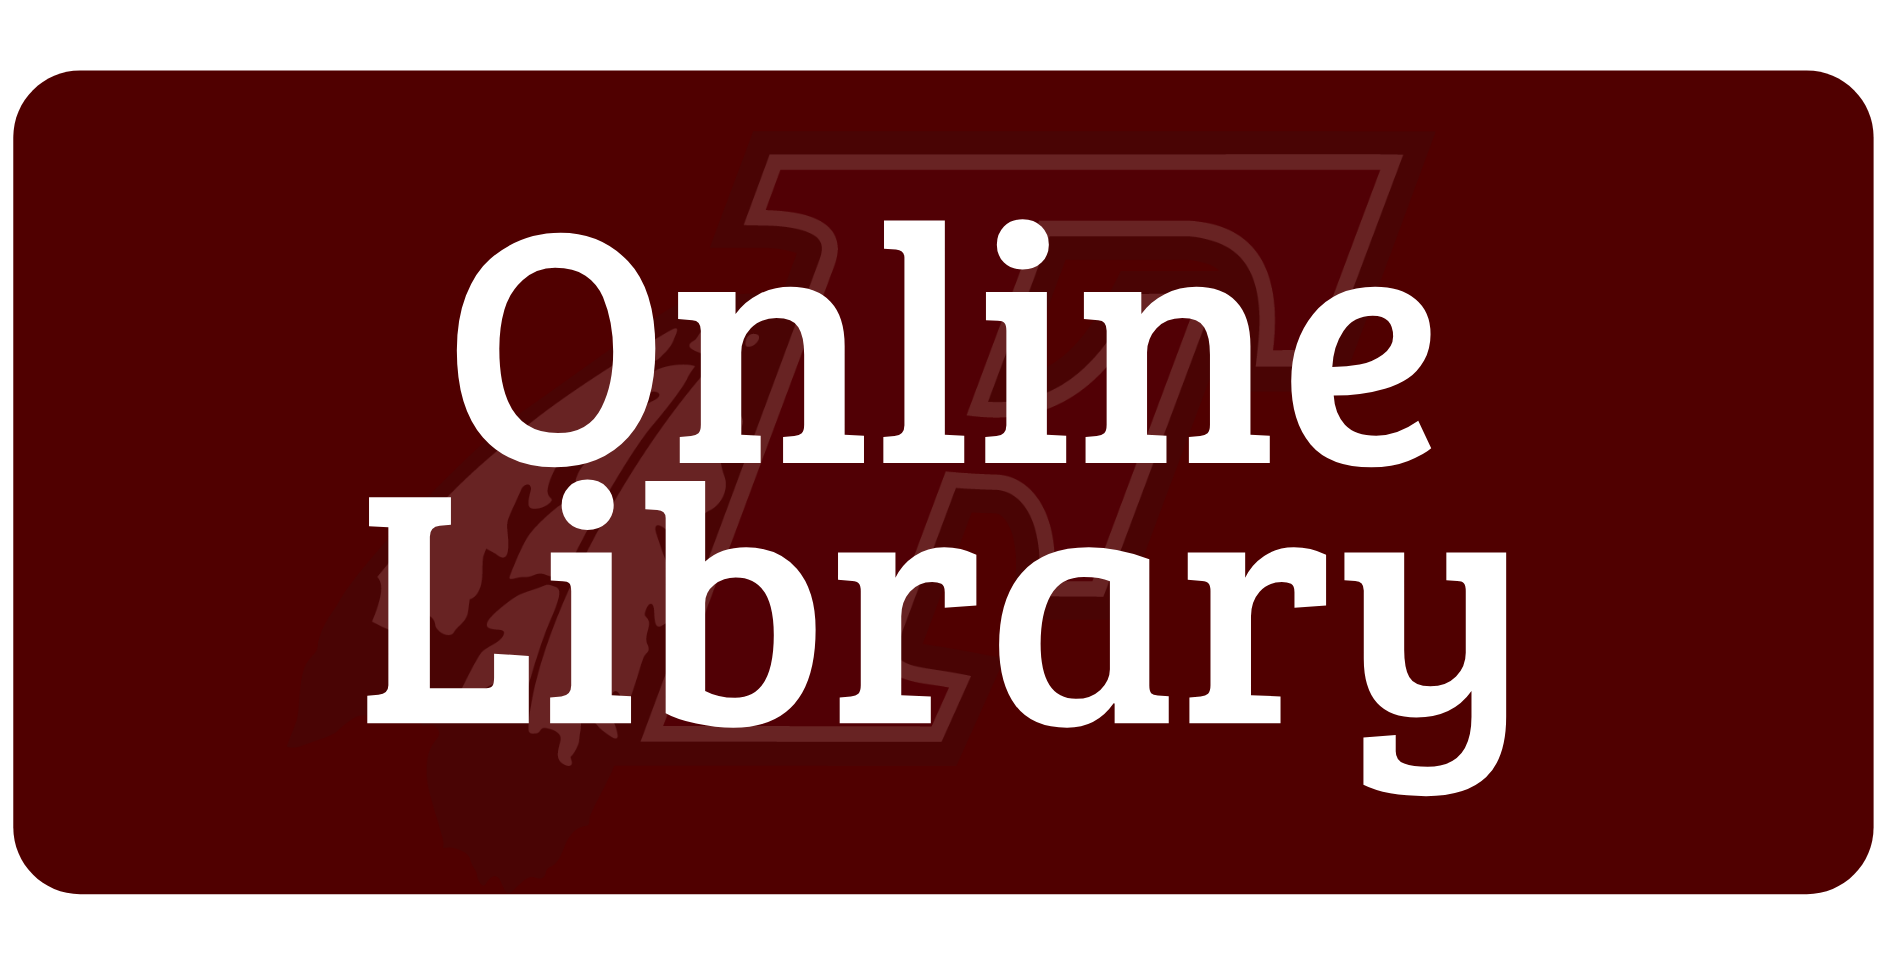 Online Library